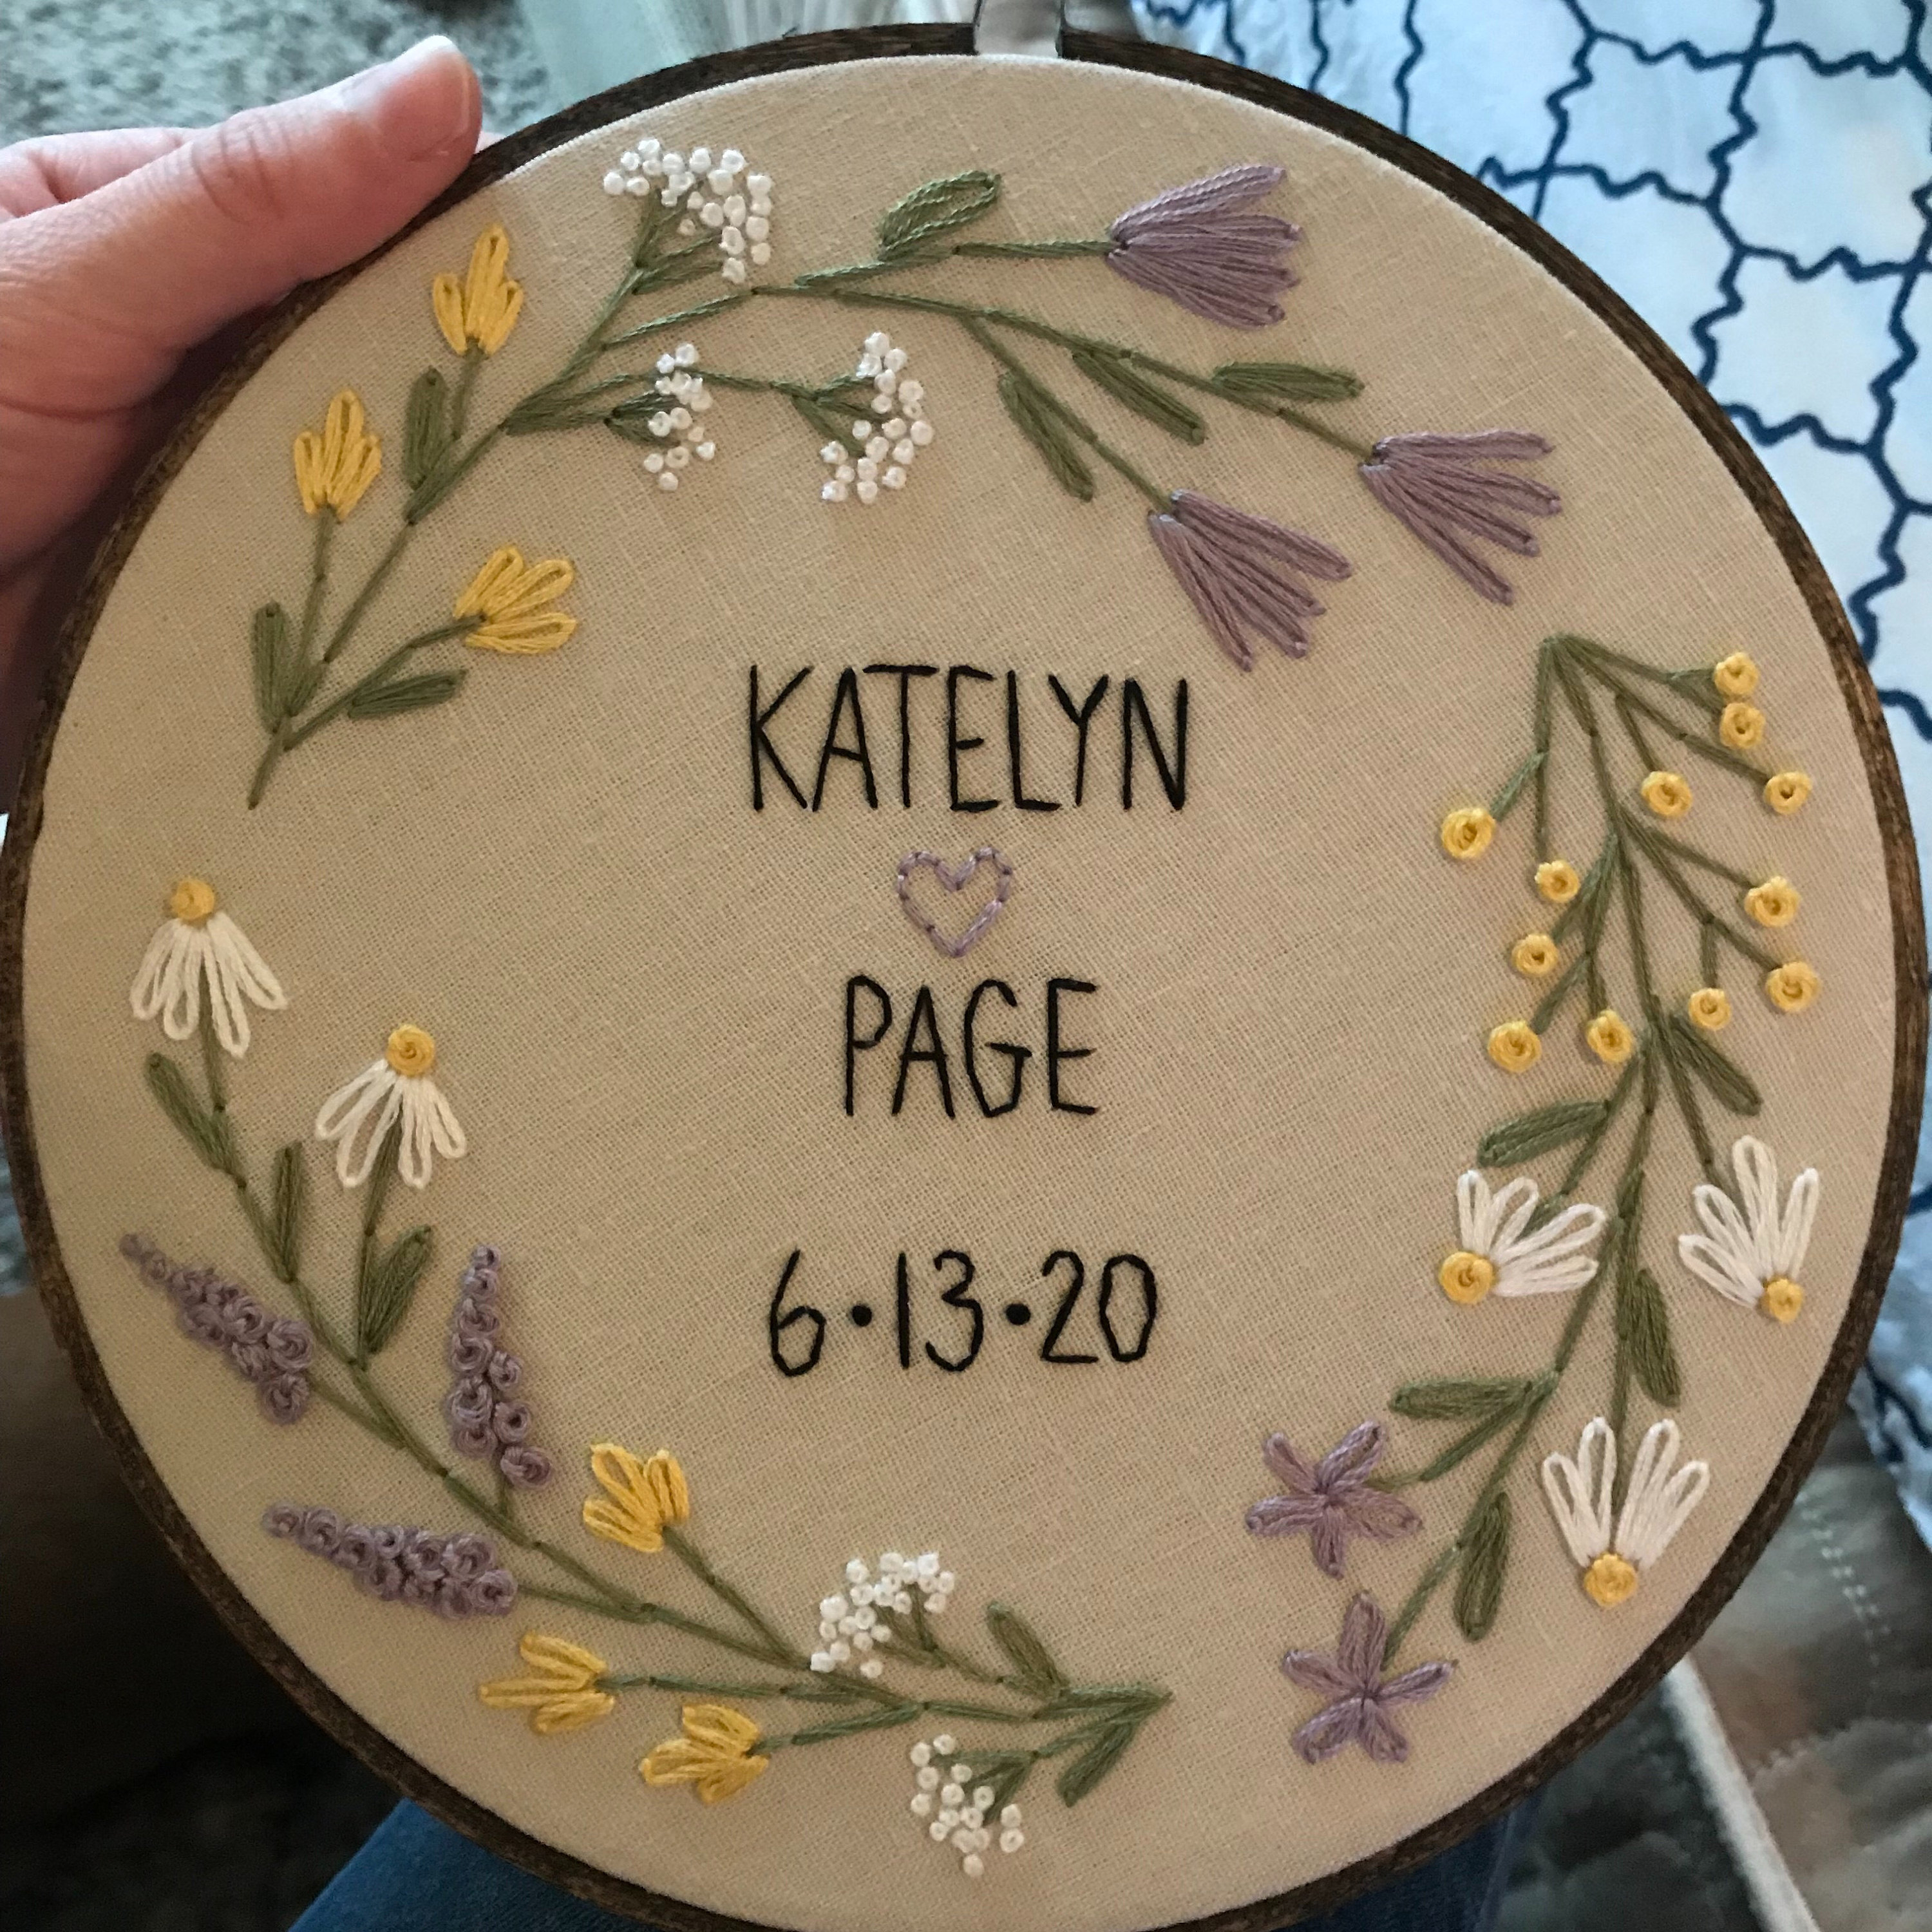 Katelyn Oldenburgh added a photo of their purchase